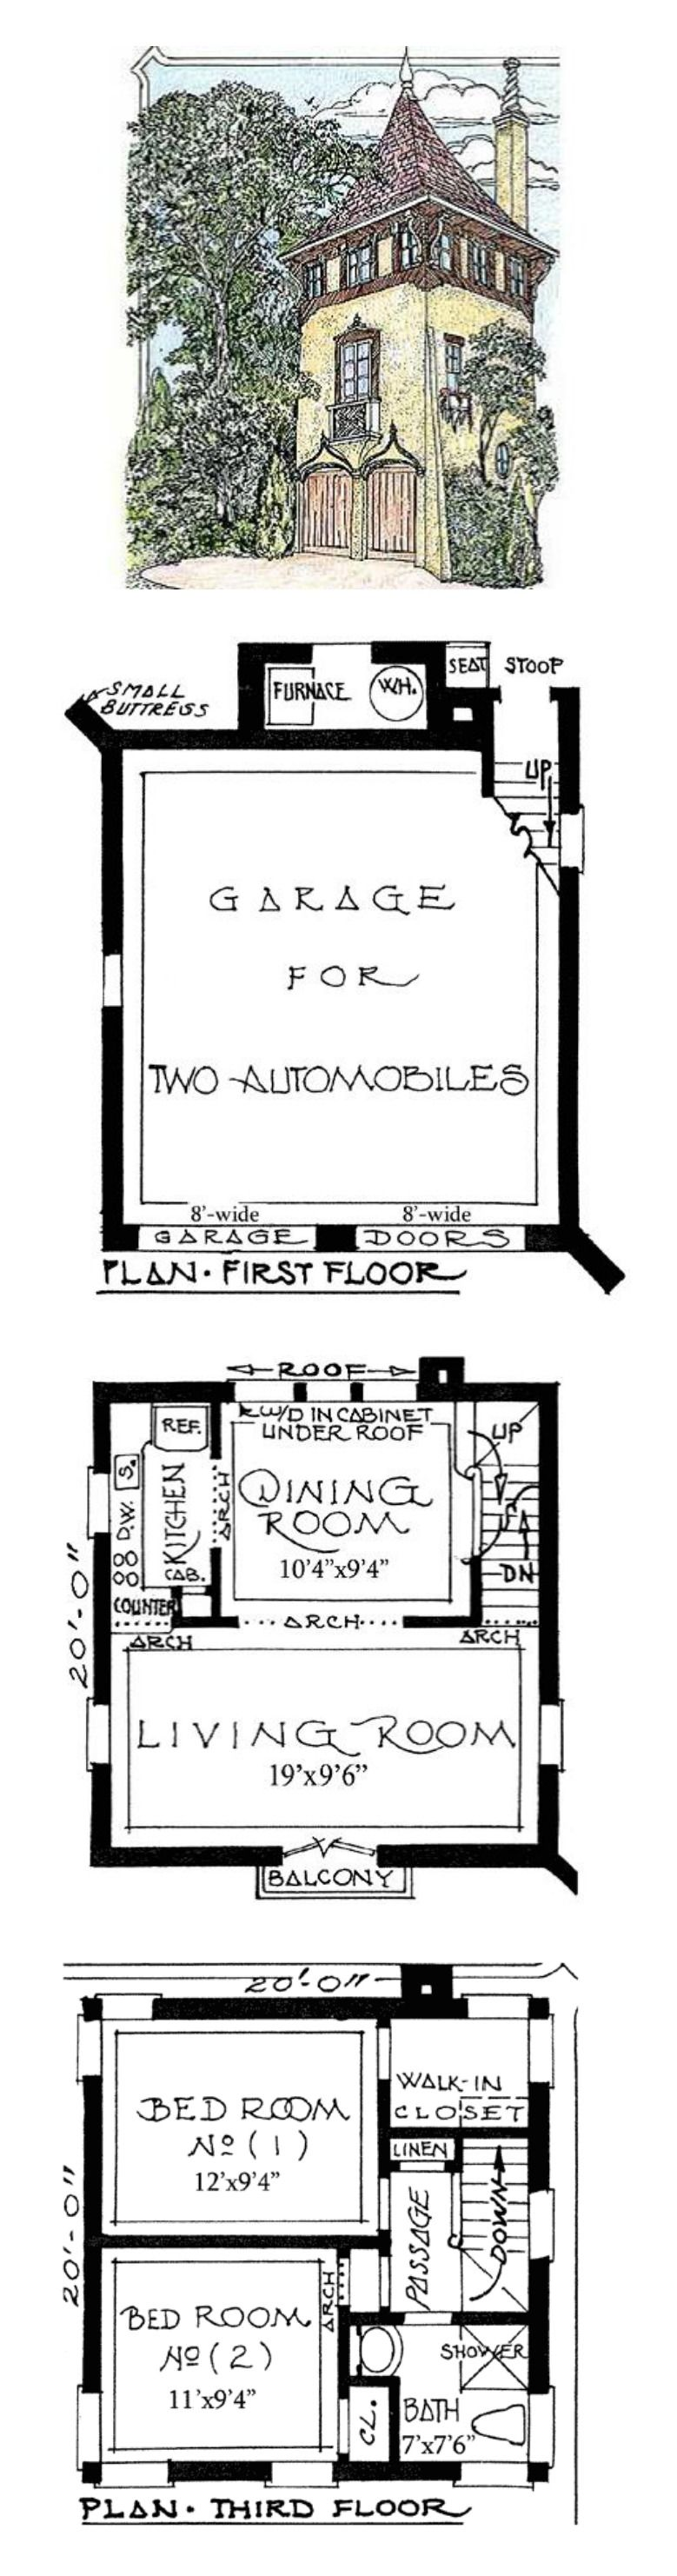 amazing tower home plans #3: Architectural Designs ~ Romantic Carriage House Plans ~ It also could have  Look Out Tower design applied to the exterior.